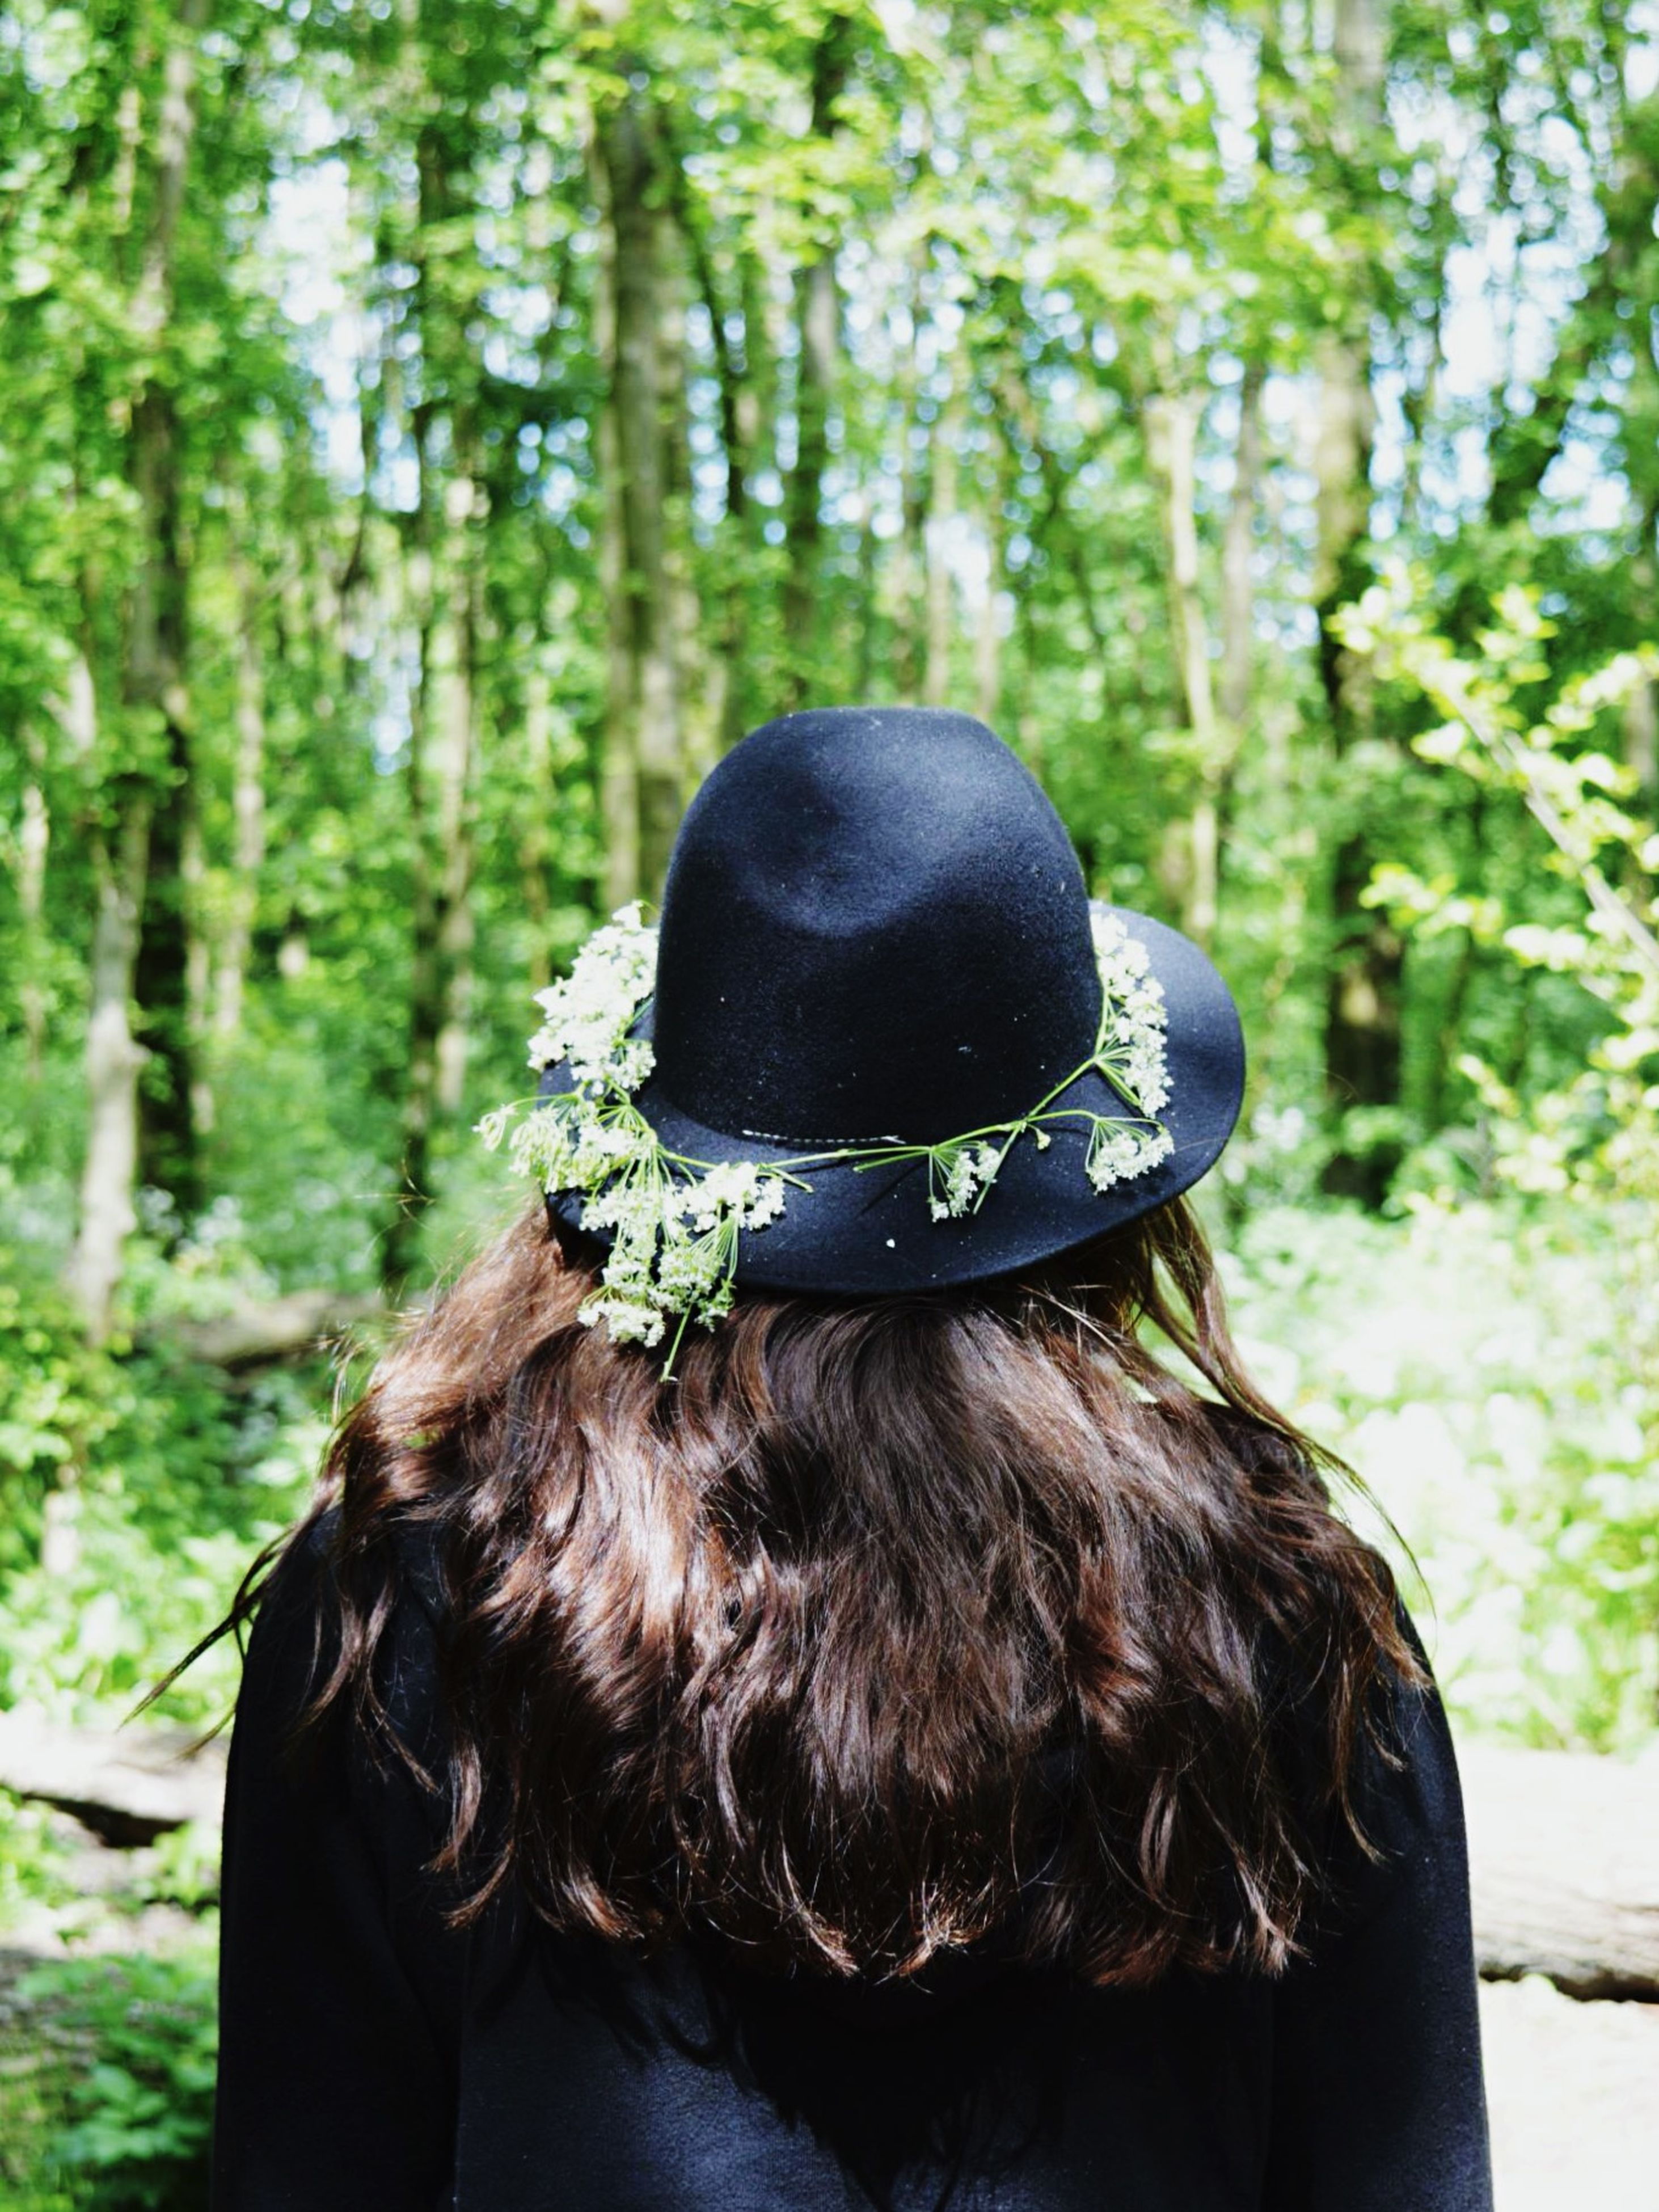 tree, focus on foreground, rear view, headshot, forest, lifestyles, front view, leisure activity, close-up, day, one animal, outdoors, black color, portrait, waist up, casual clothing, hat, young adult